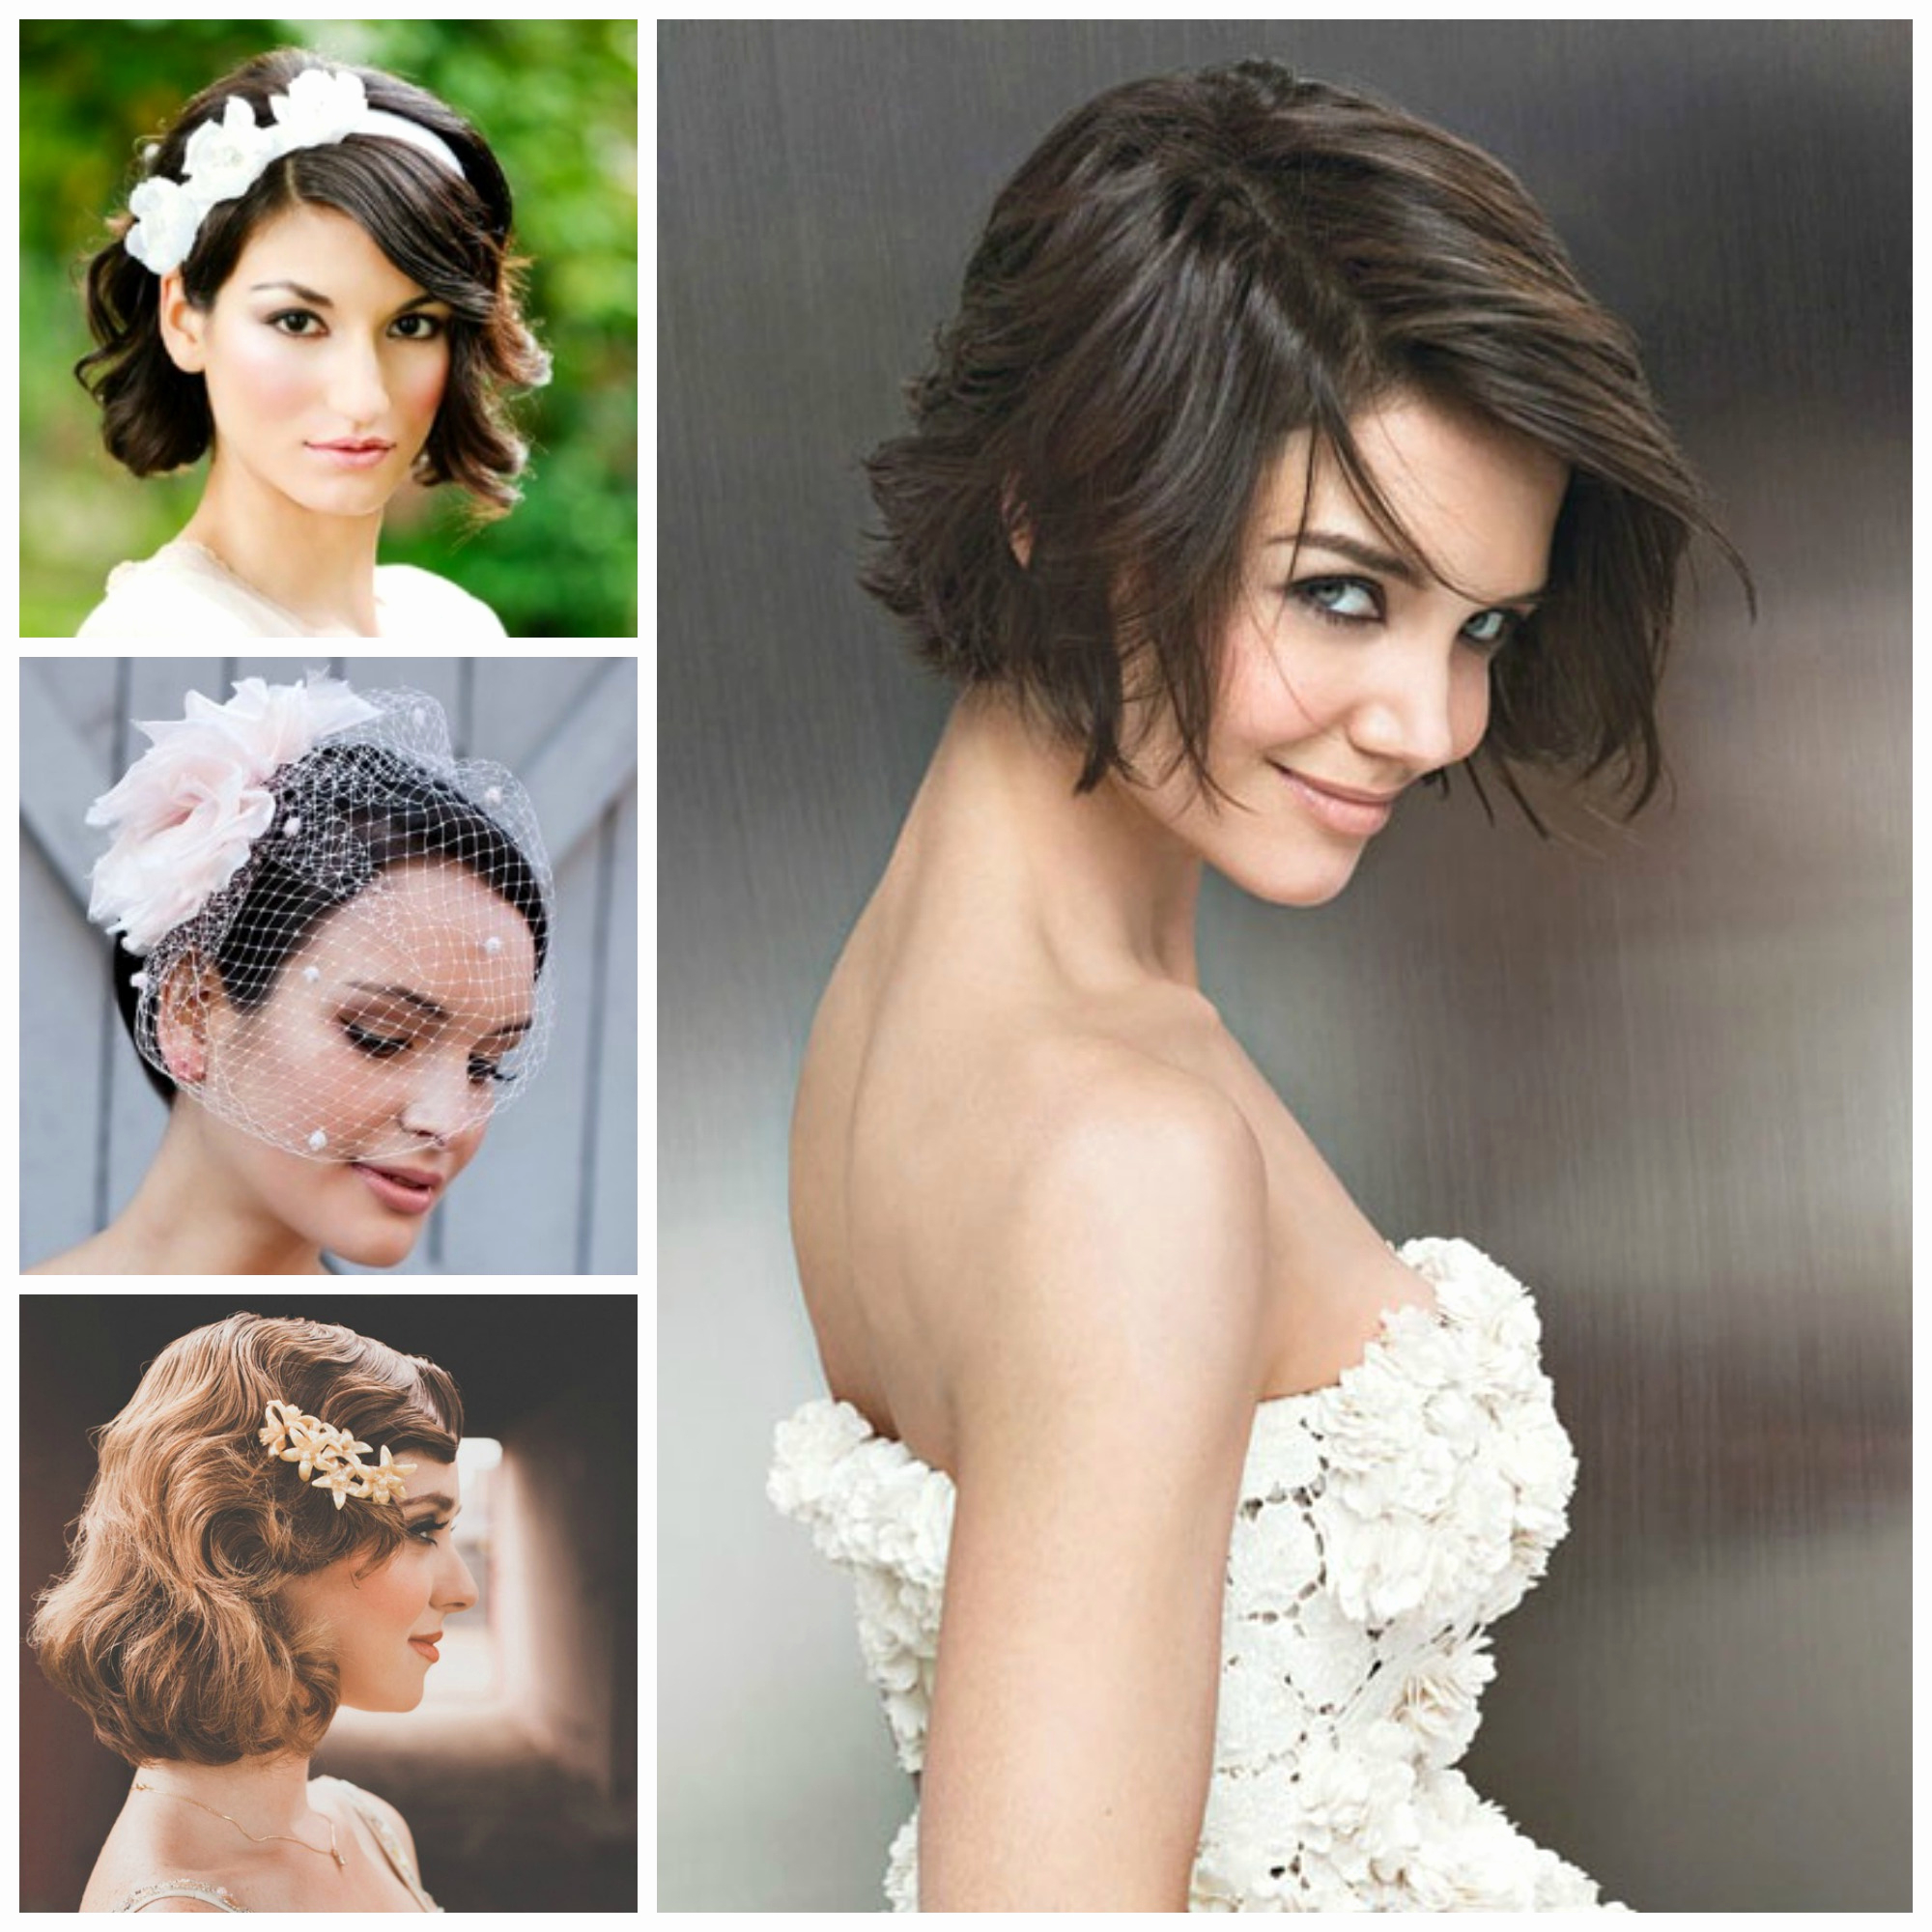 Short Bridal Hairstyles Amazing 18 Wedding Hairstyles For Short Hair Throughout Hairstyle For Short Hair For Wedding (View 18 of 25)